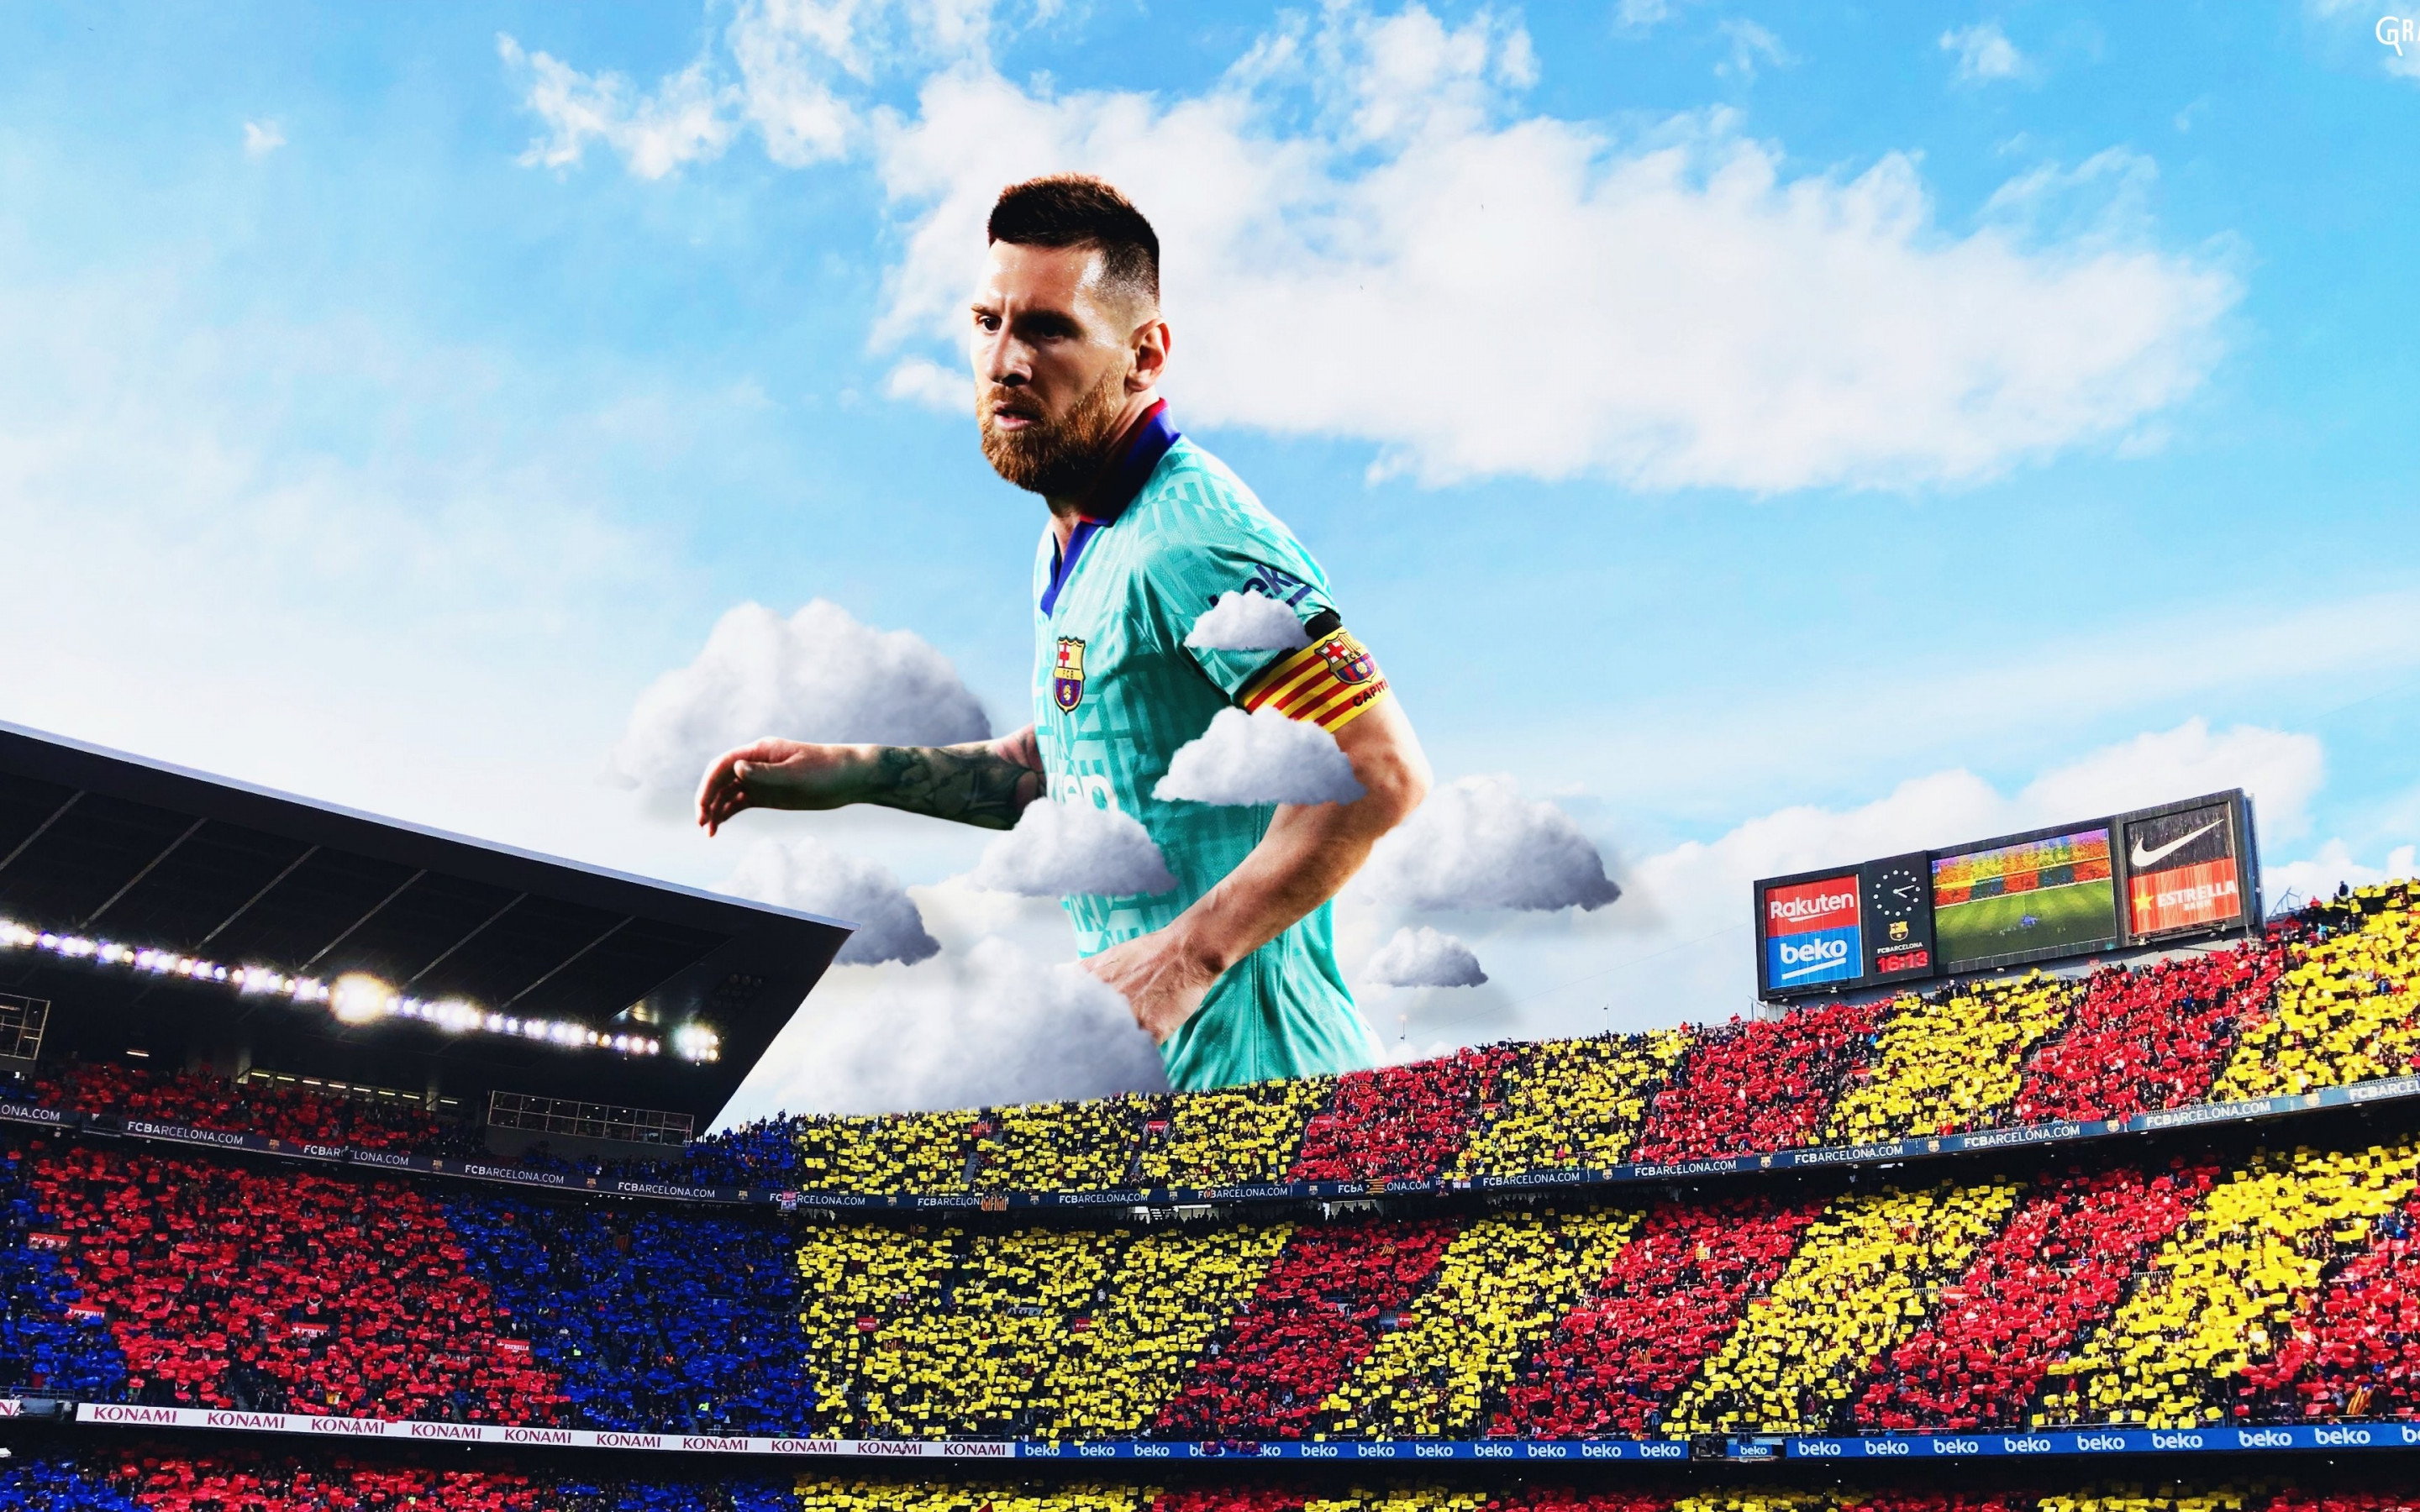 Lionel Messi wallpaper 2880x1800